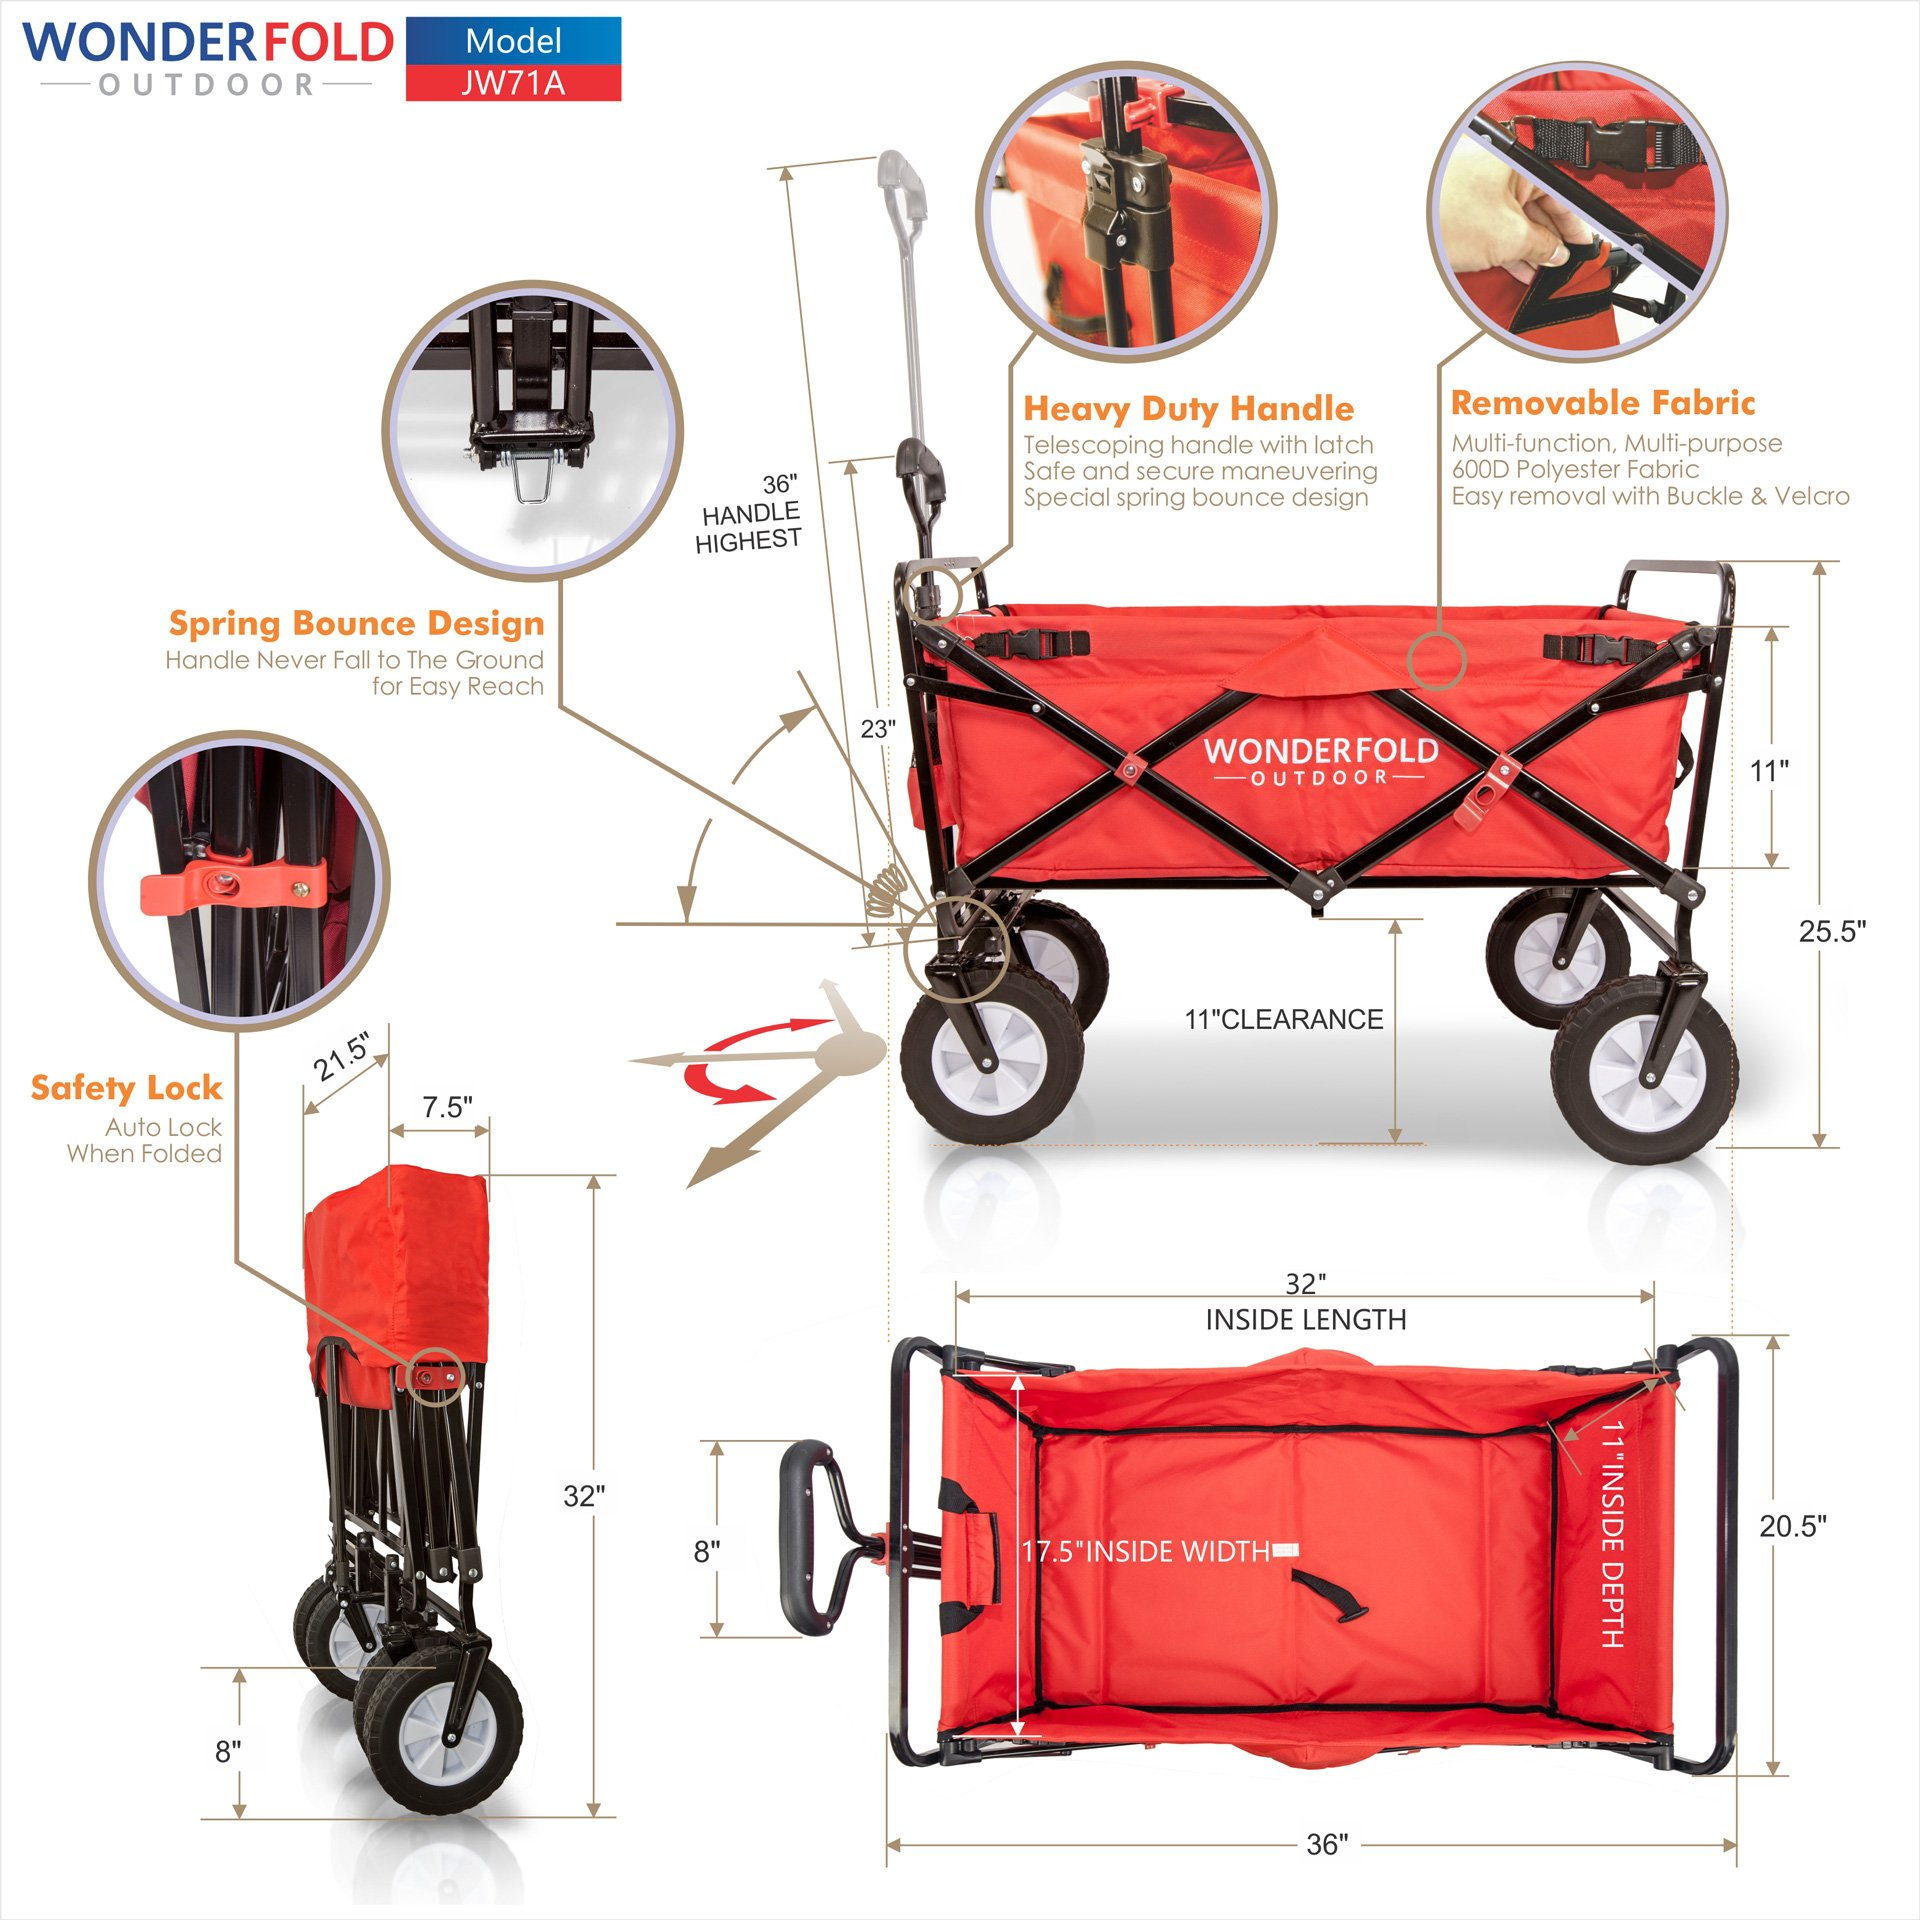 Wonder Fold Outdoor Next Generation Utility Folding Wagon with Removable Polyester Bag, Spring Bounce Feature, Auto Safety Locks, 180 Degree Steering Telescoping Handle Performance, Scarlet Red by WonderFold Outdoor (Image #7)